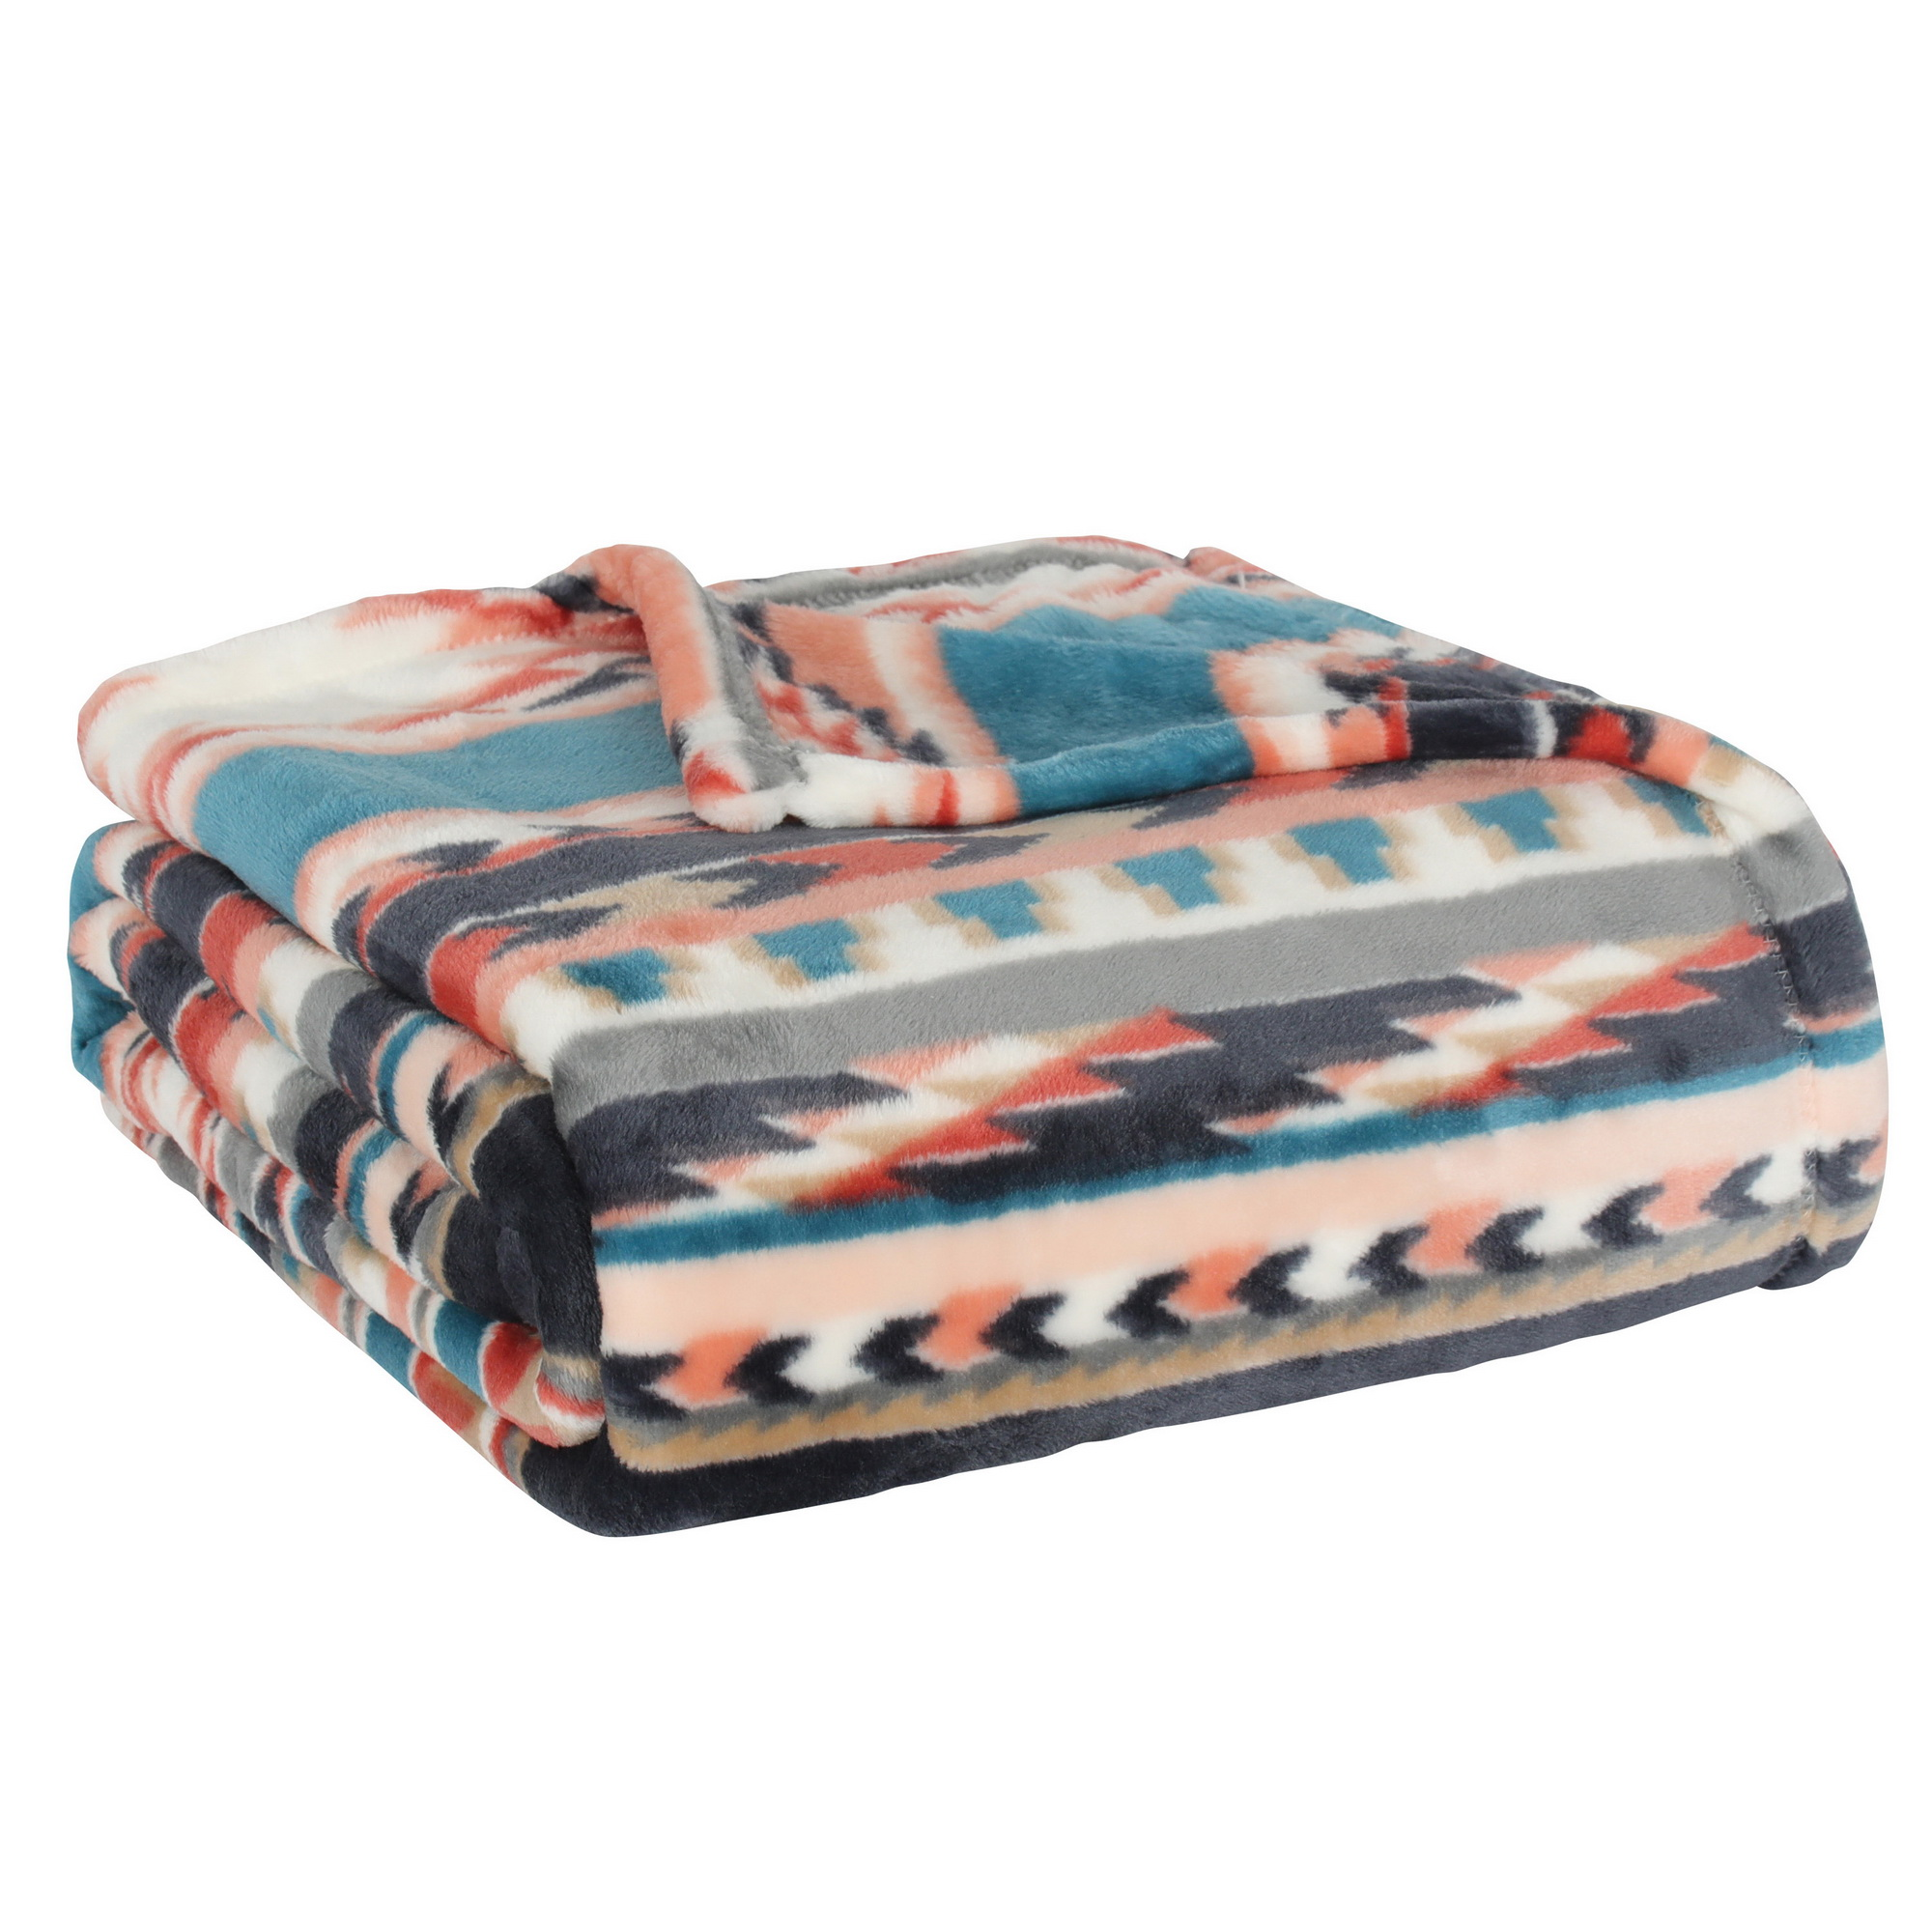 Better Homes & Gardens Oversized Velvet Plush Throw Blanket